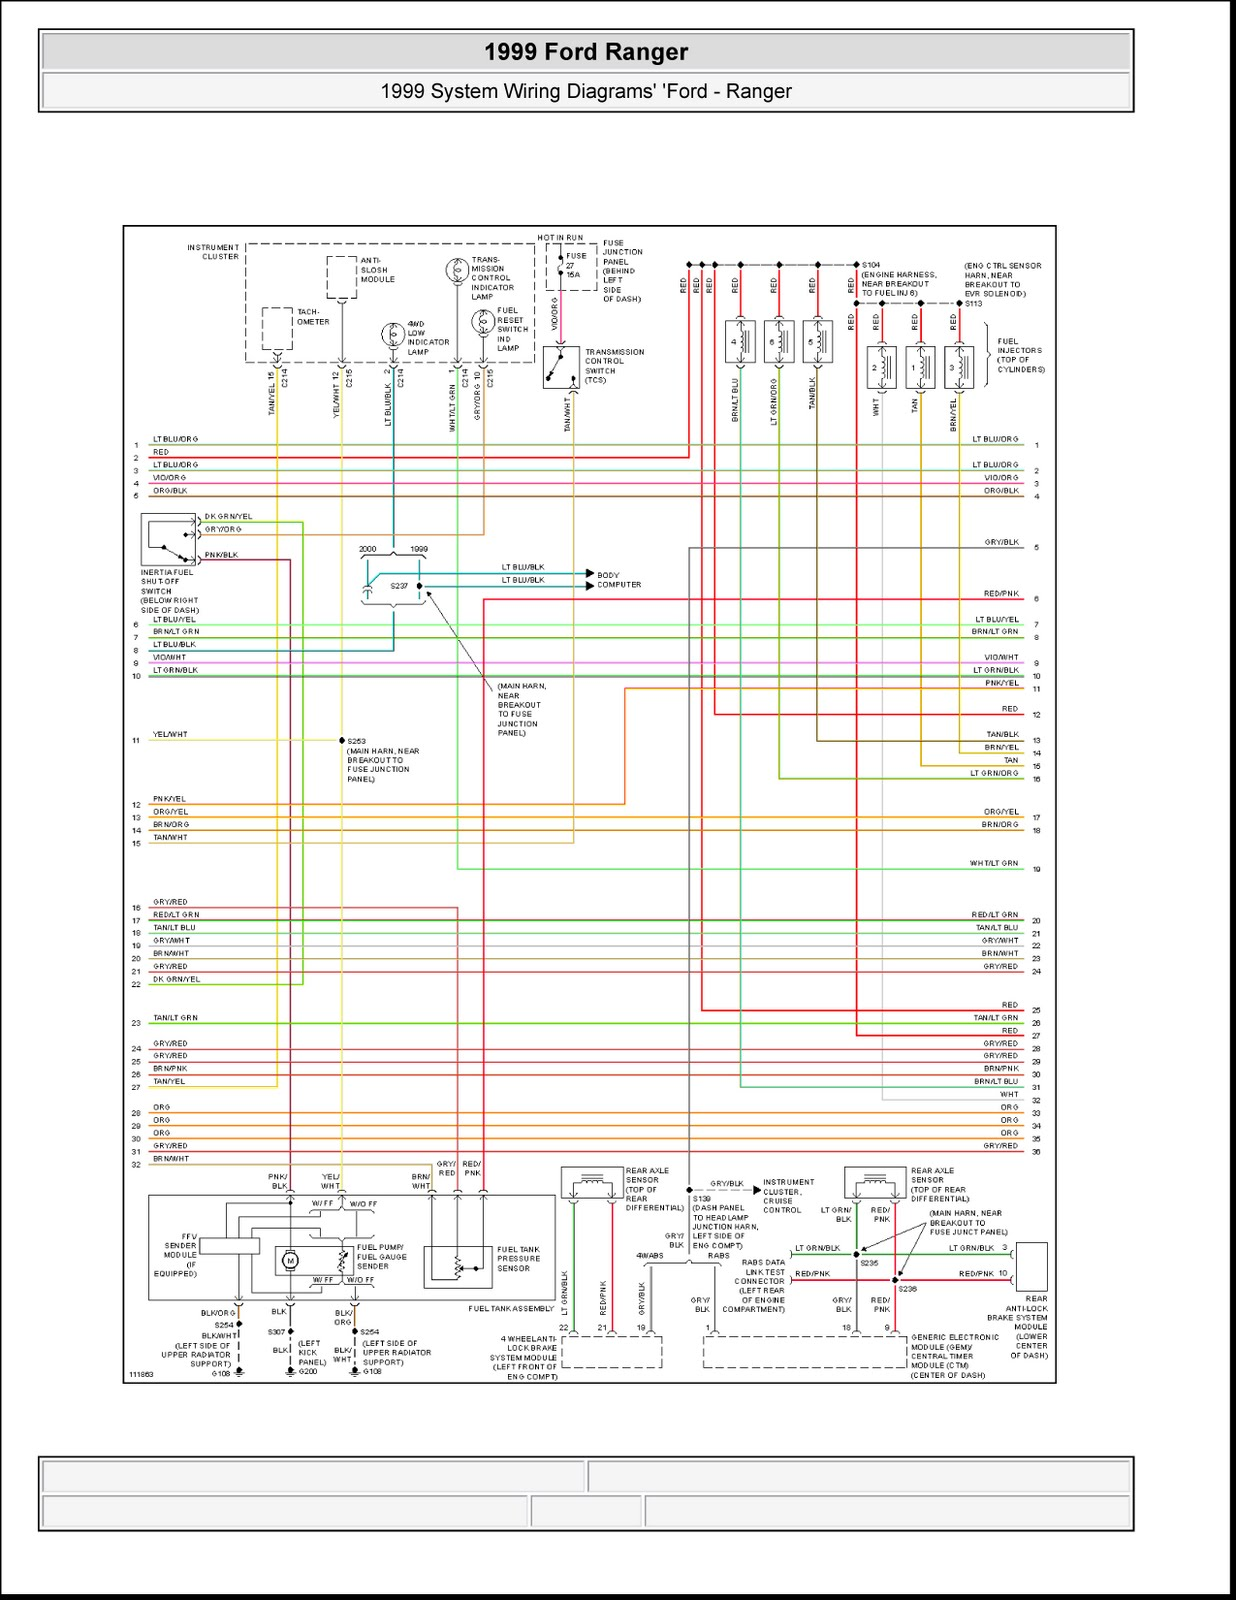 1999 Ford Ranger System Wiring Diagrams | 4 Images | Wiring Diagrams Center